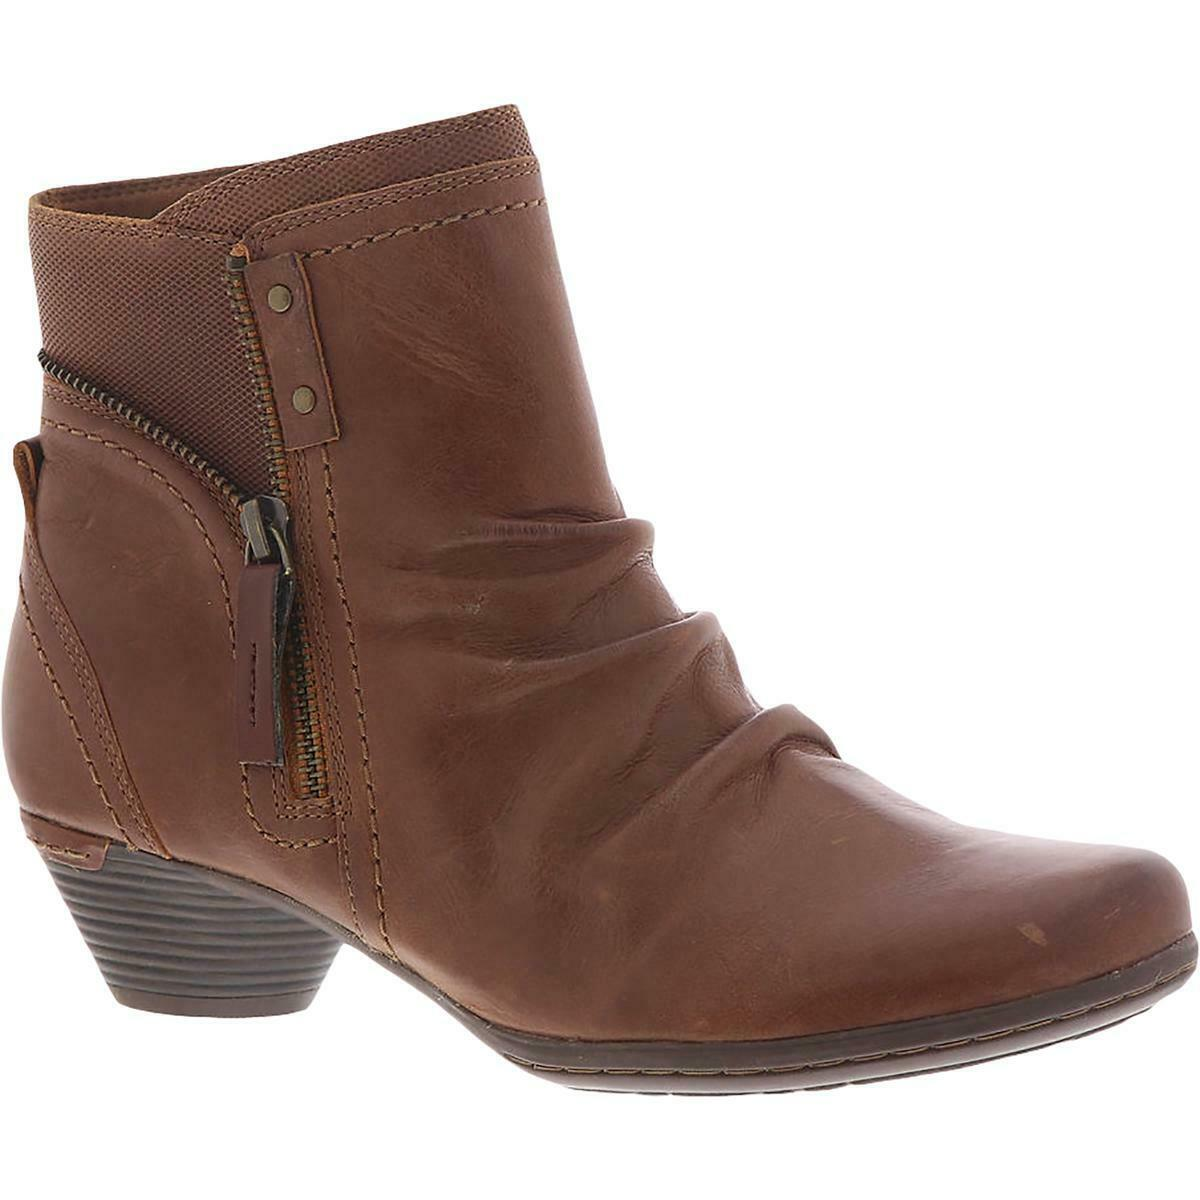 Cobb Hill Womens Laurel Leather Round Toe Ankle Booties Shoes BHFO 4574